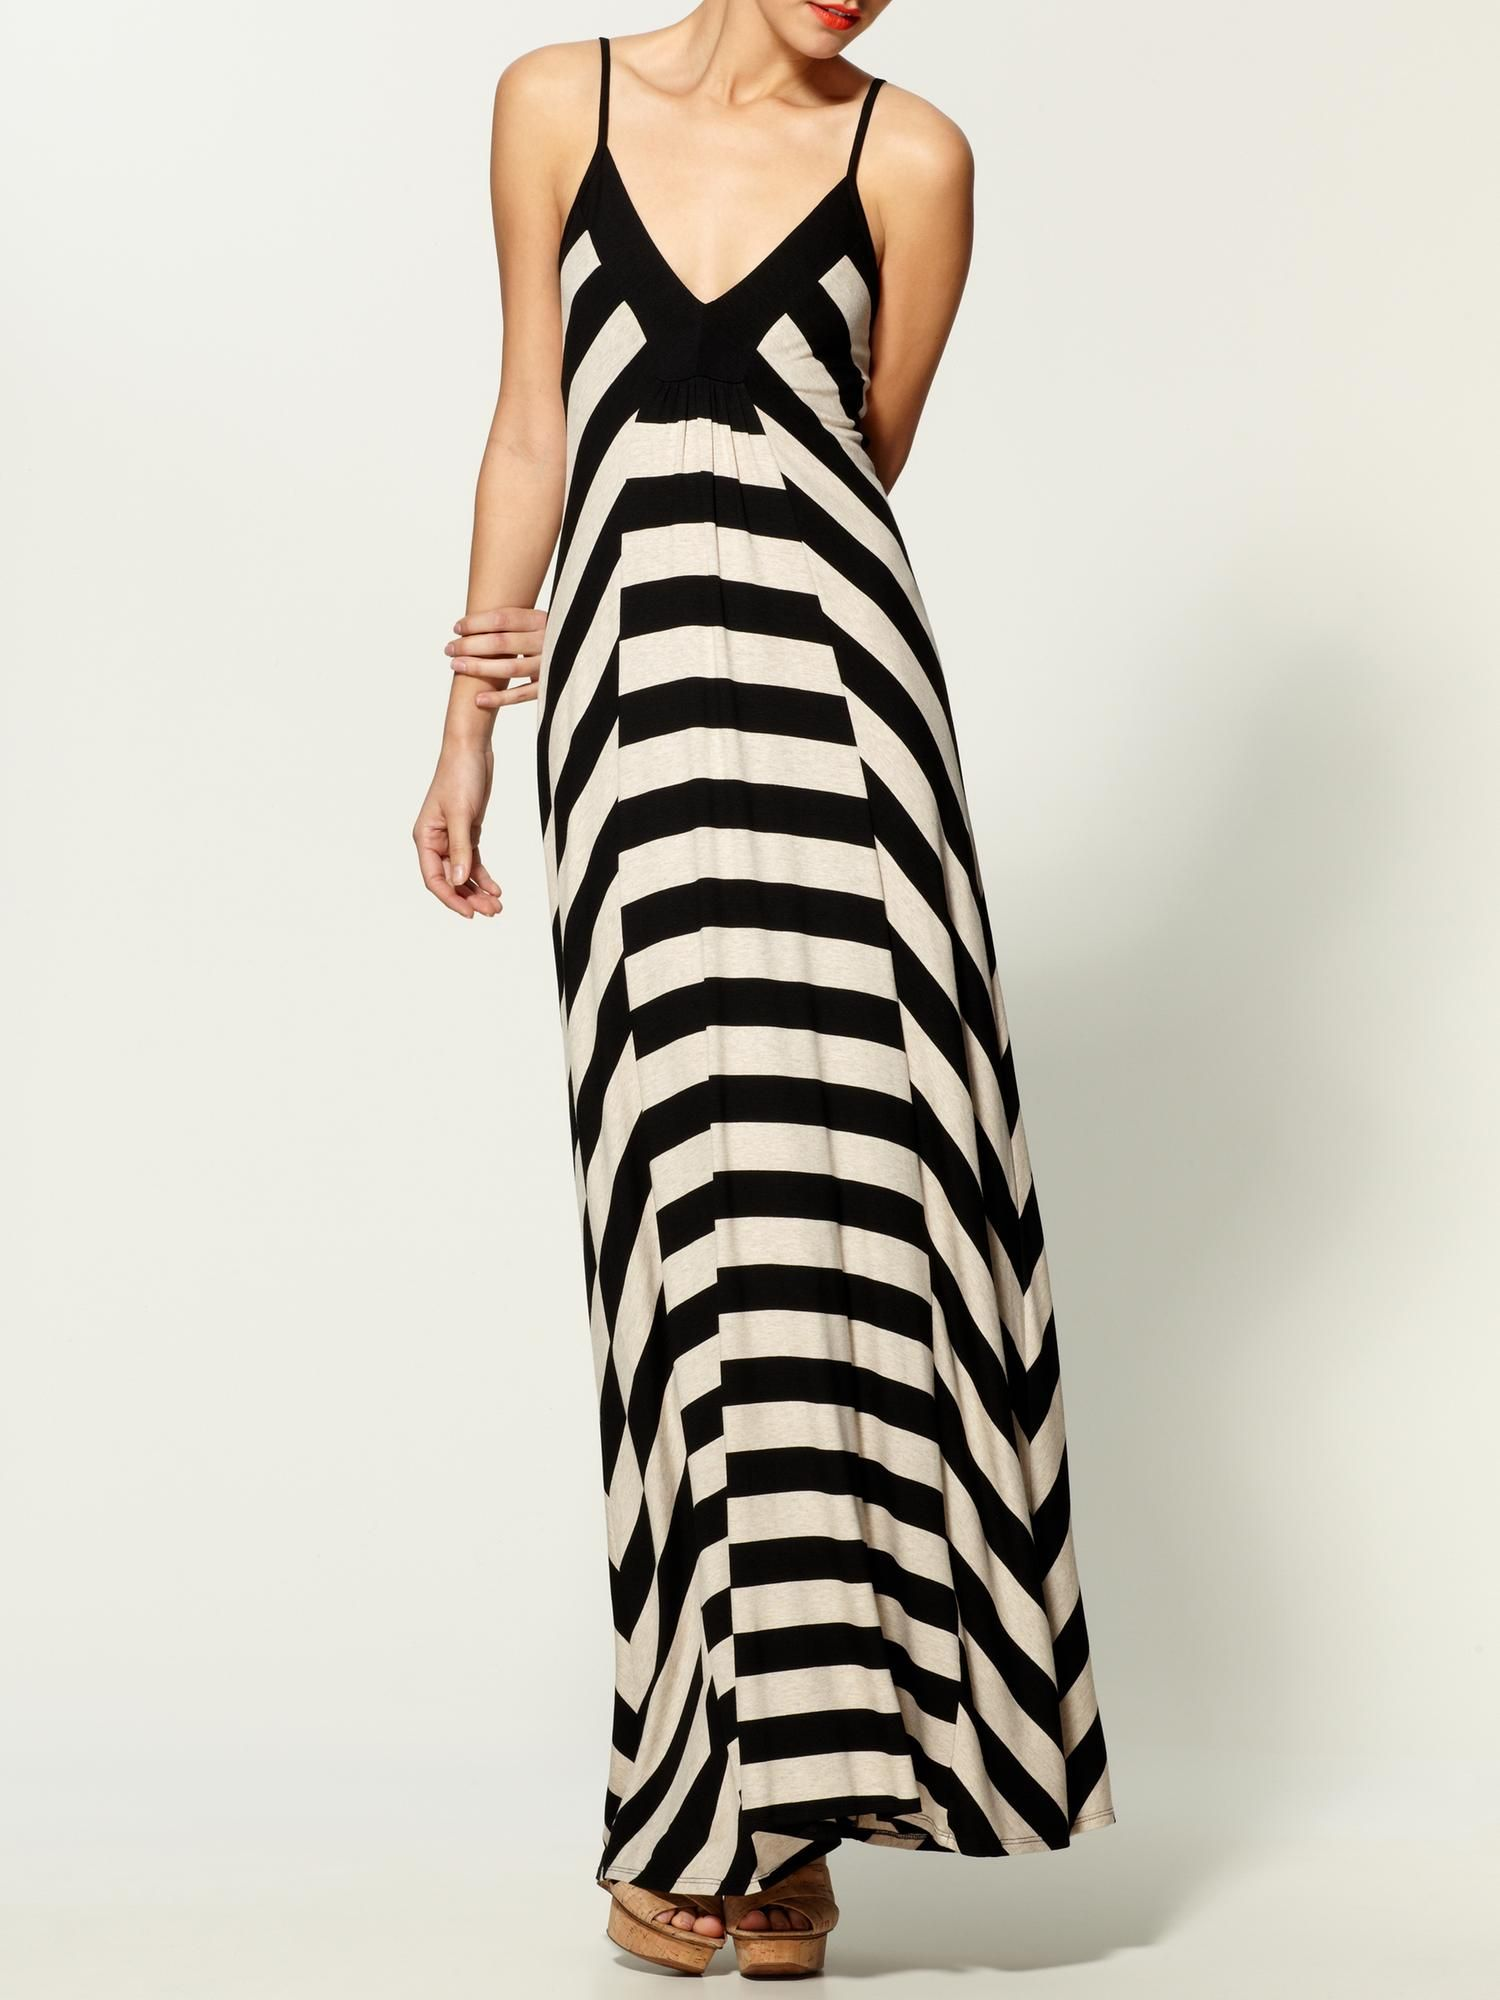 Black And White Striped Maxi Dress : Tips For Finding